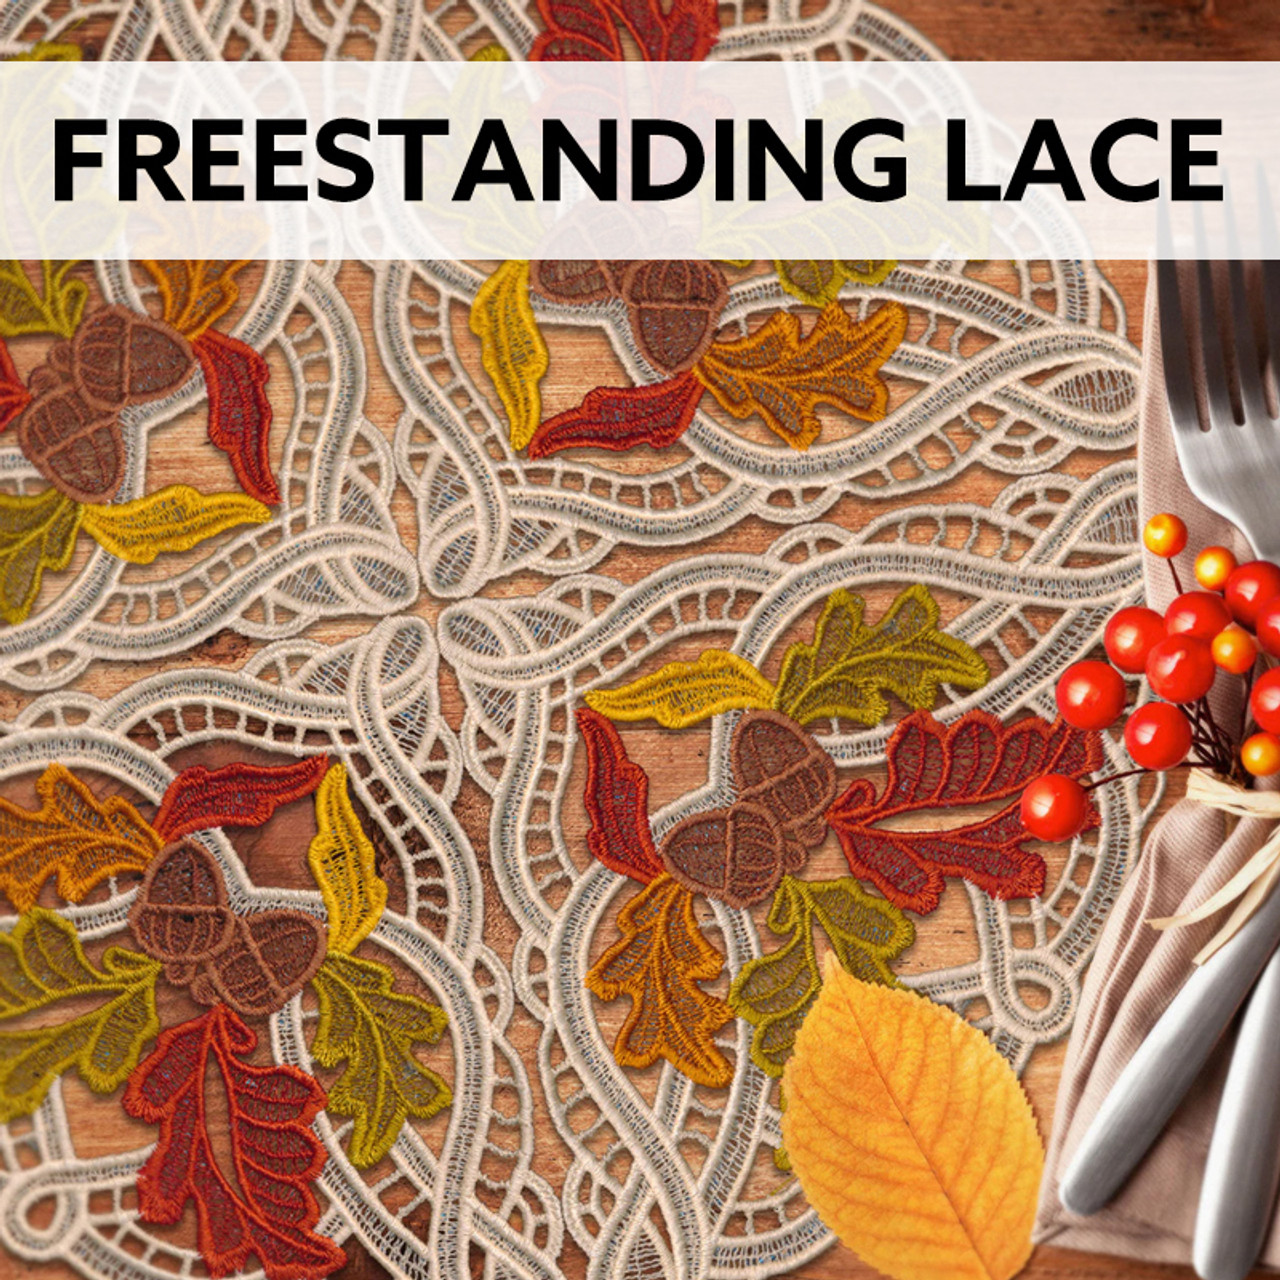 Freestanding Lace